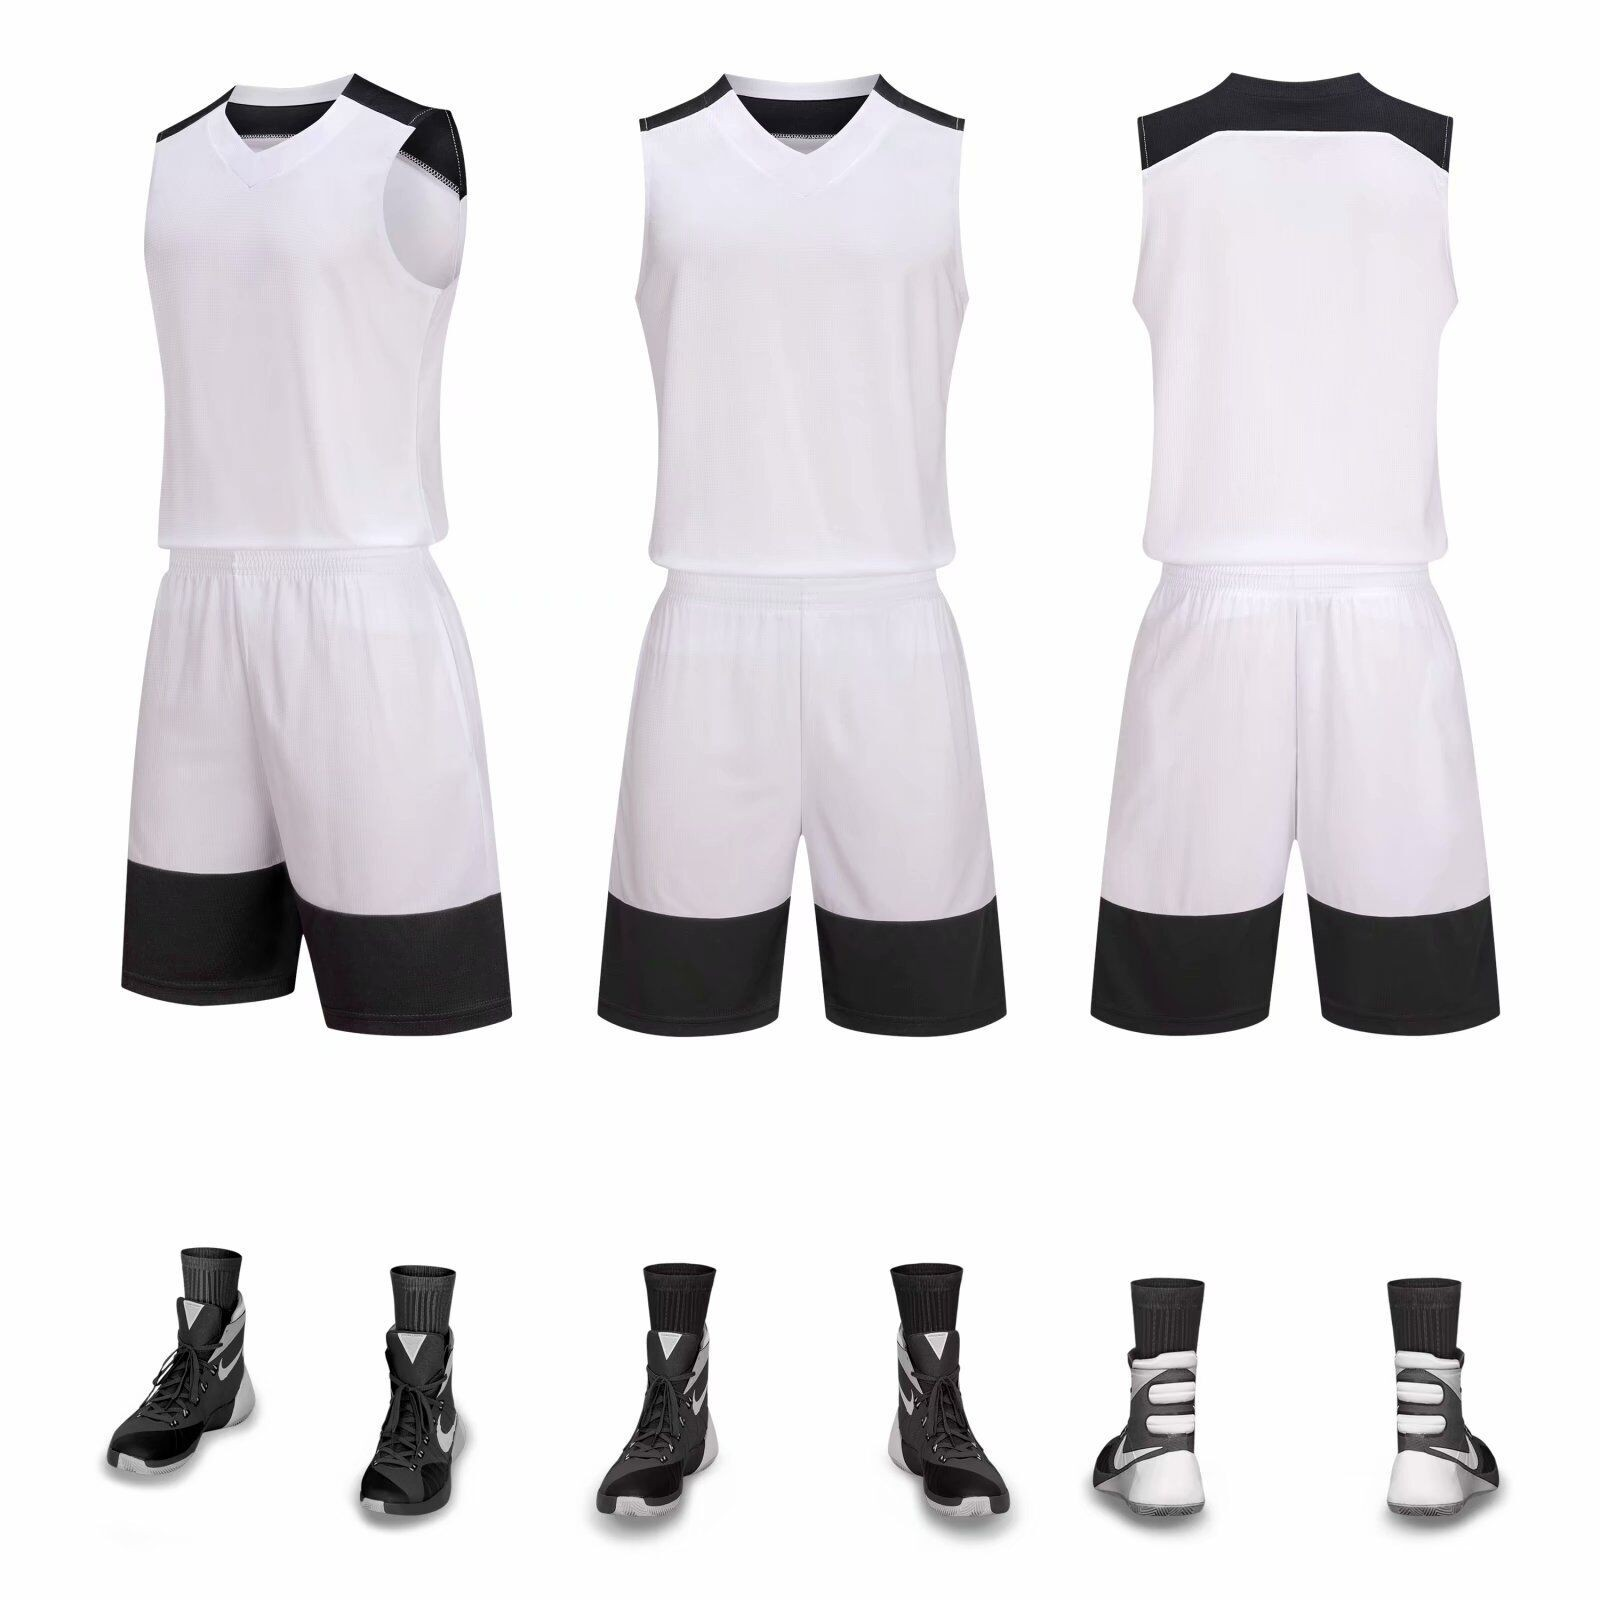 Wholesale Blank Basketball Jerseys for Printing Sublimation team wear uniforms